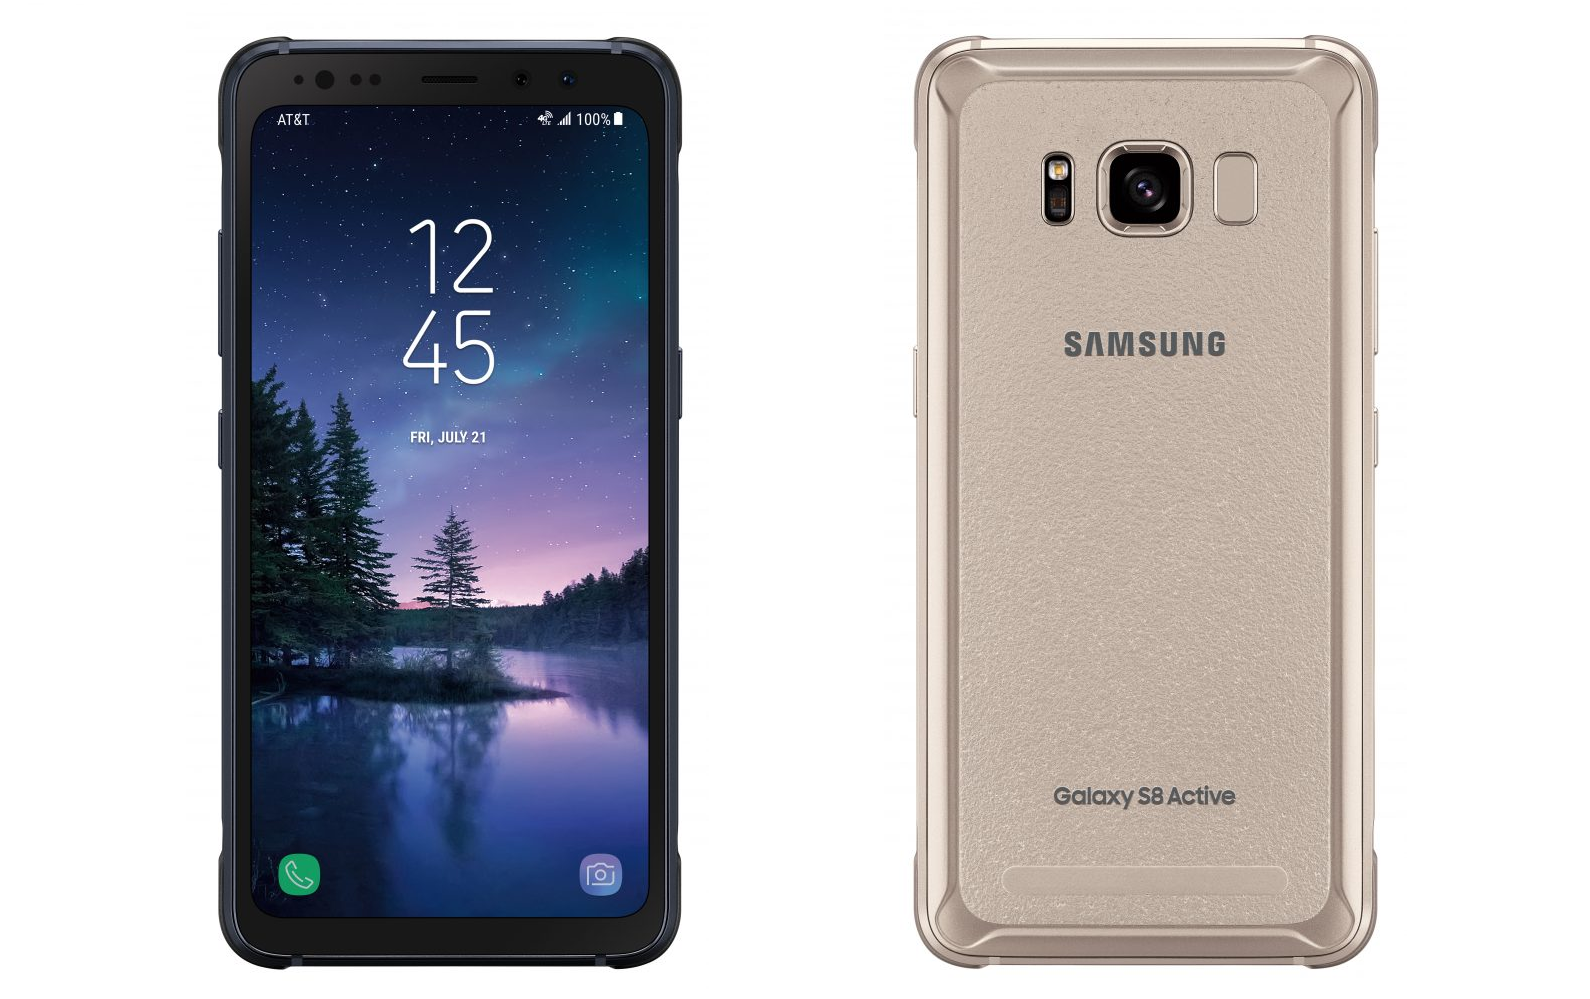 You can now pre-order the Samsung Galaxy S8 Active from AT&T